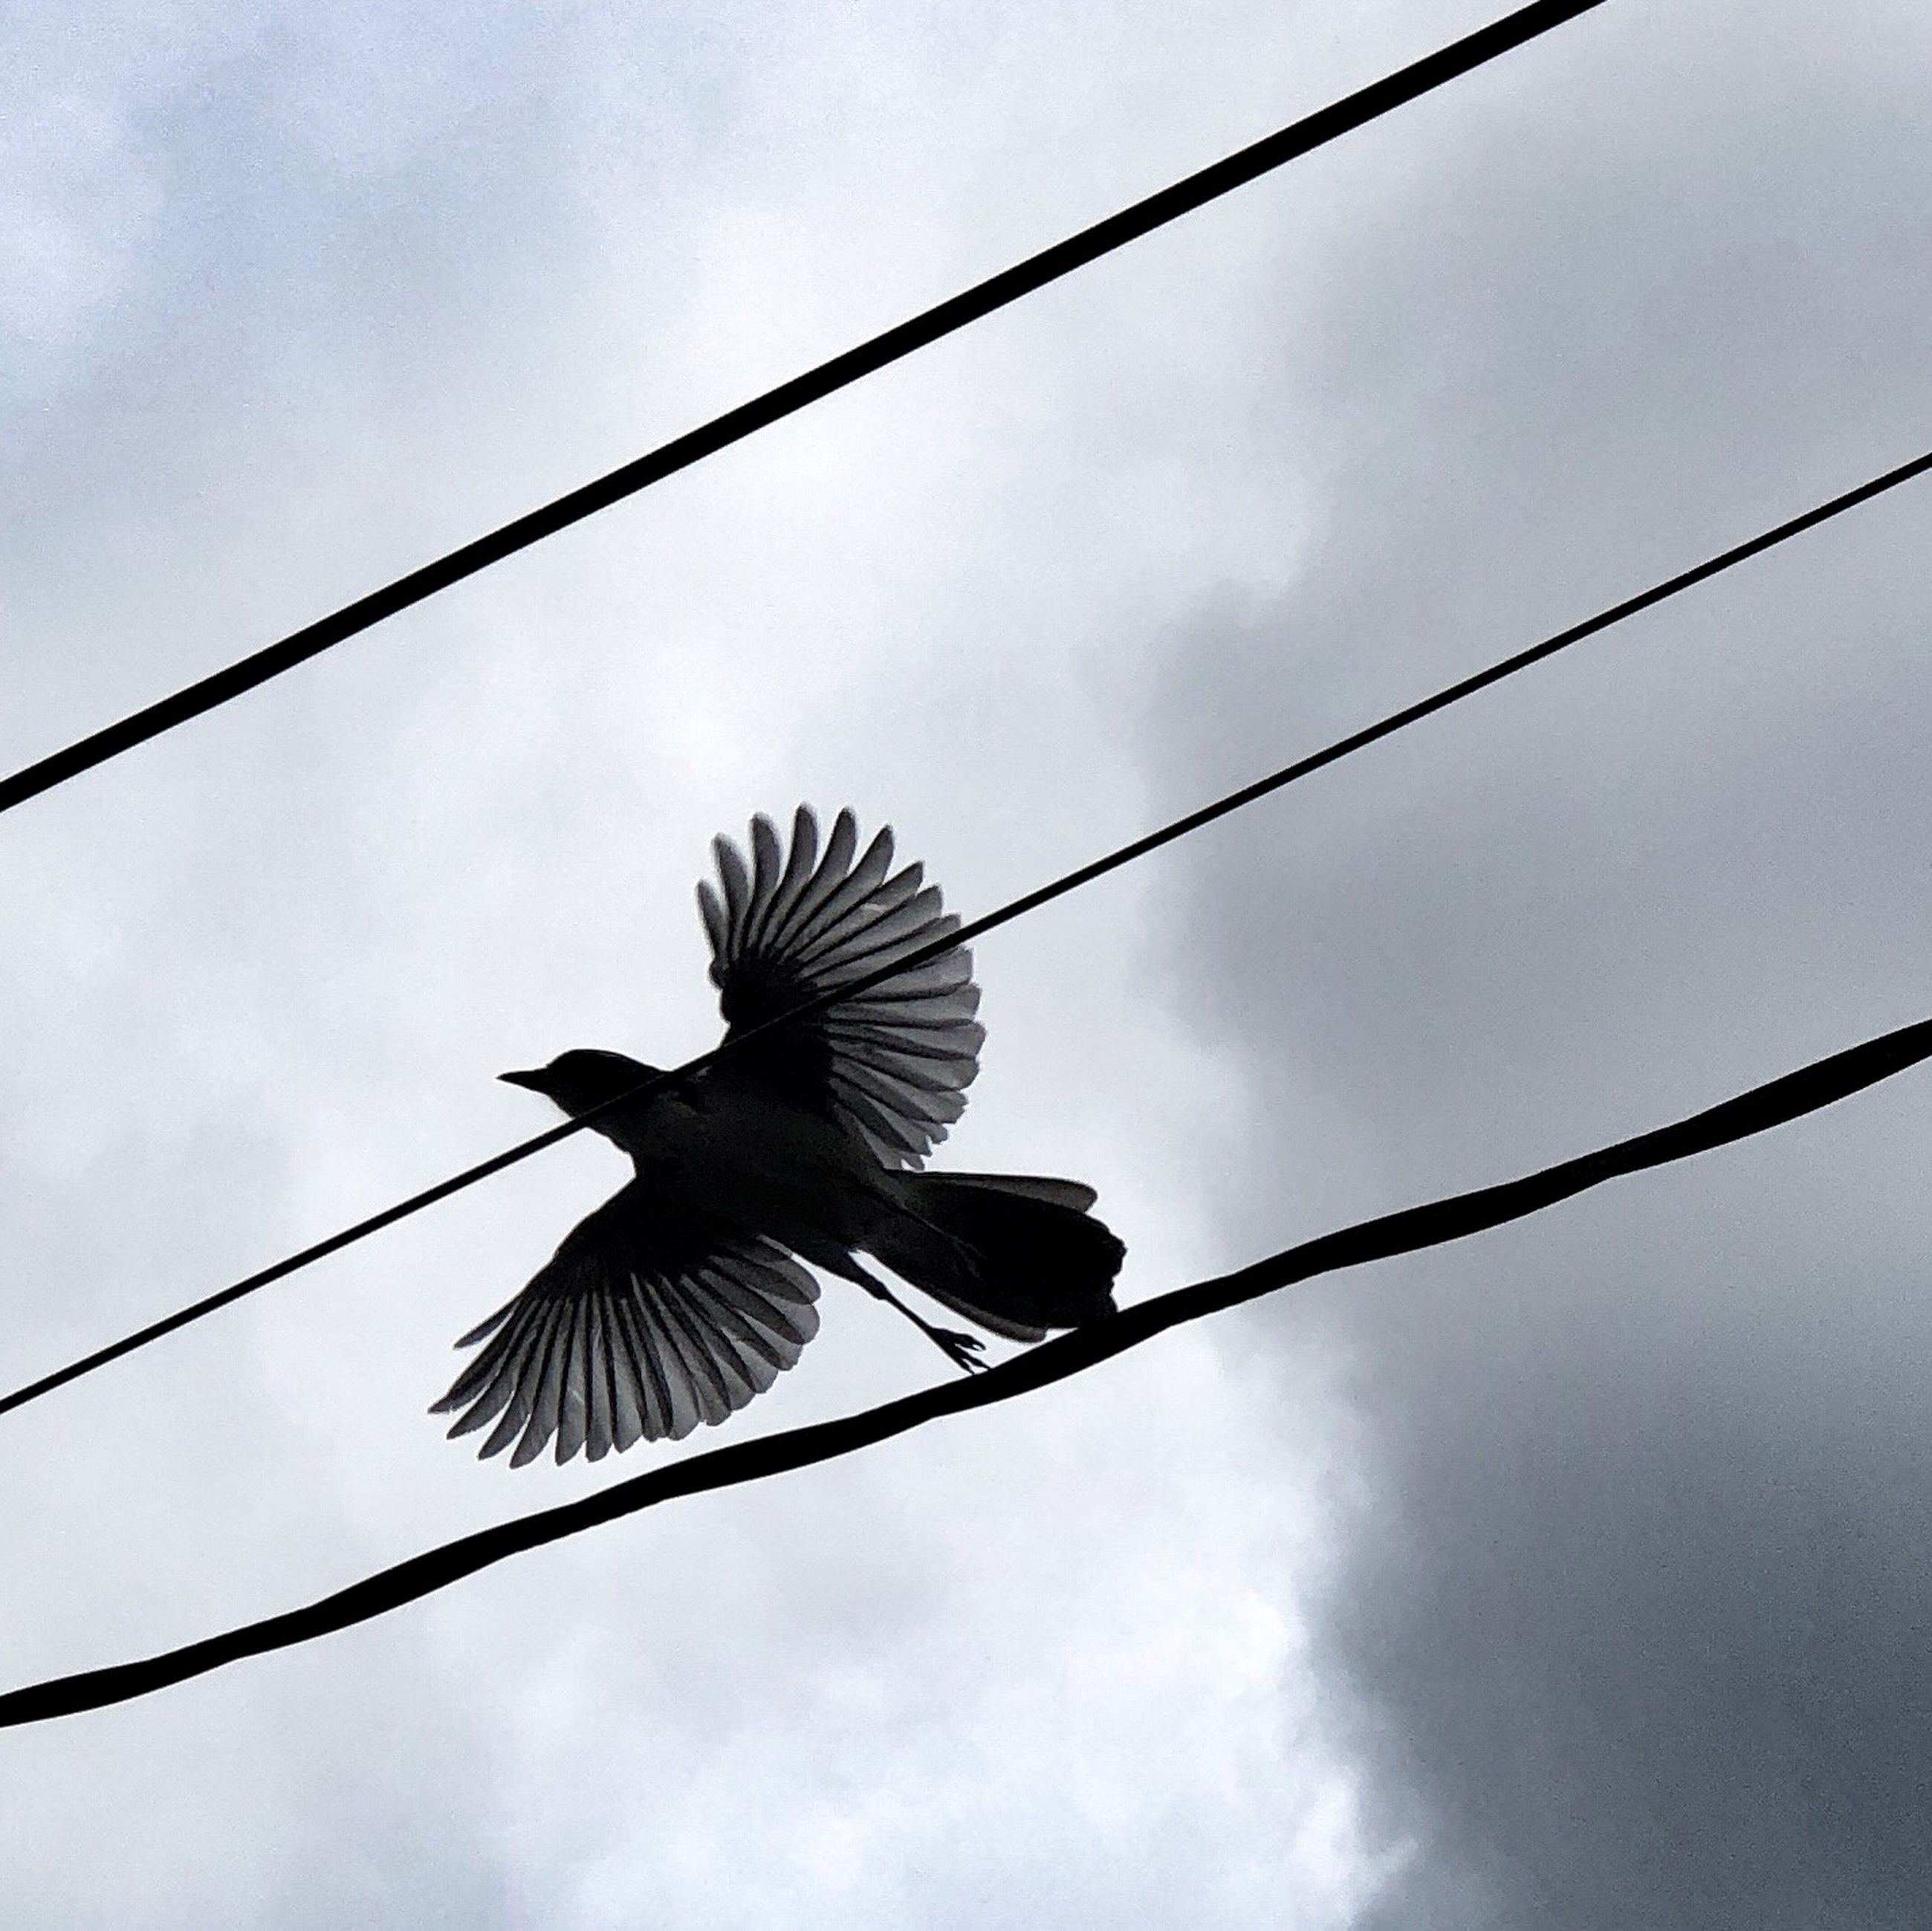 bird, animals in the wild, animal wildlife, vertebrate, animal, low angle view, animal themes, sky, flying, one animal, spread wings, cloud - sky, cable, nature, no people, day, outdoors, silhouette, mid-air, full length, power supply